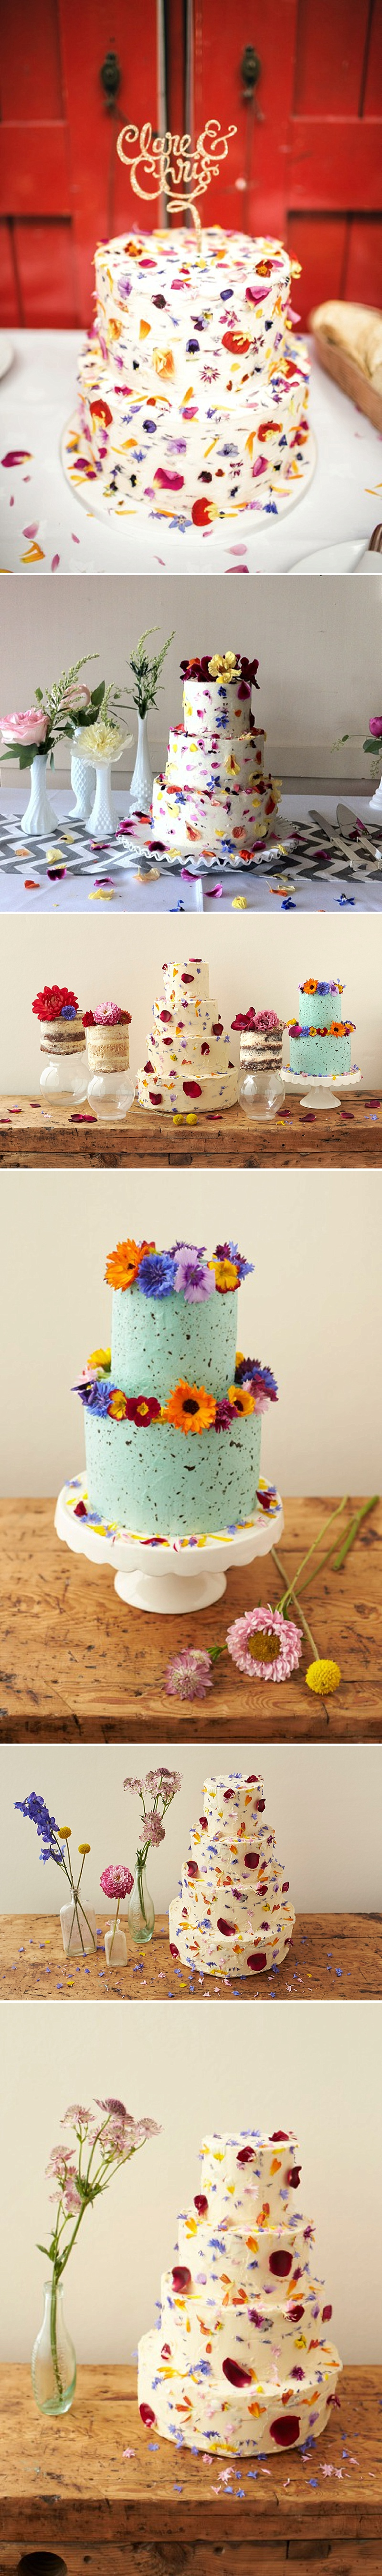 cake decorated with edible flowers by bees bakery